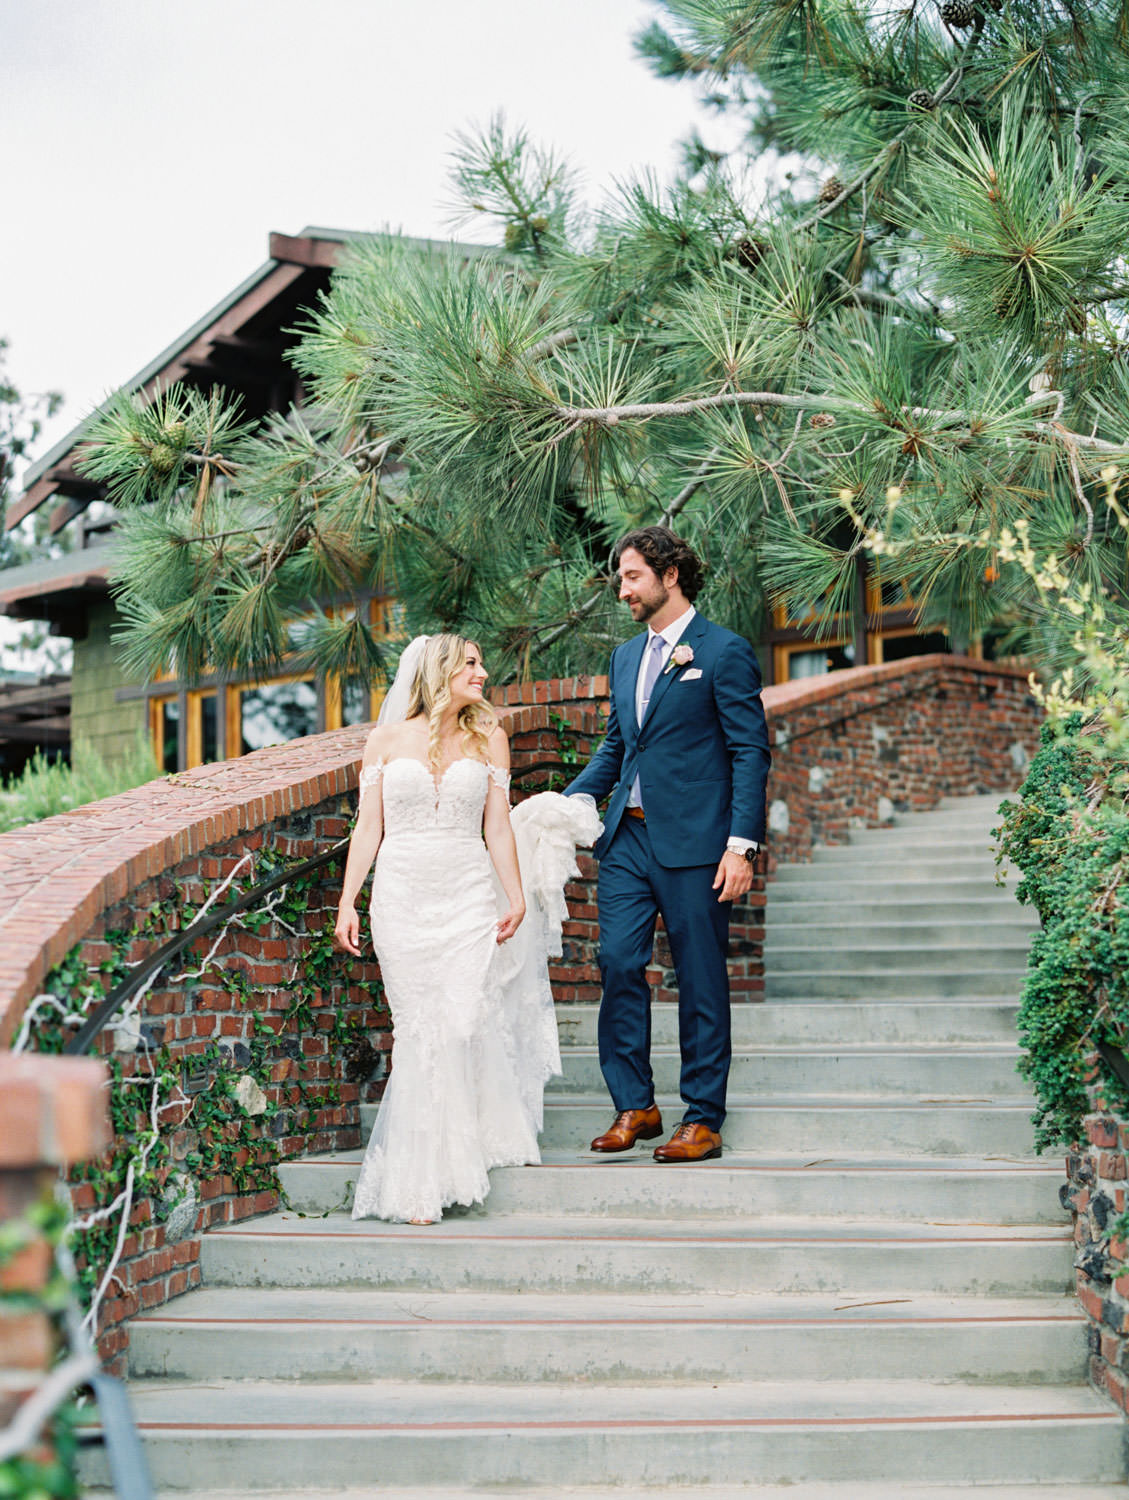 Bride in Pronovias off shoulder lace gown and long train and veil walking down stairs with groom in navy suit and rose boutonniere, Lodge at Torrey Pines wedding, film photography by Cavin Elizabeth Photography